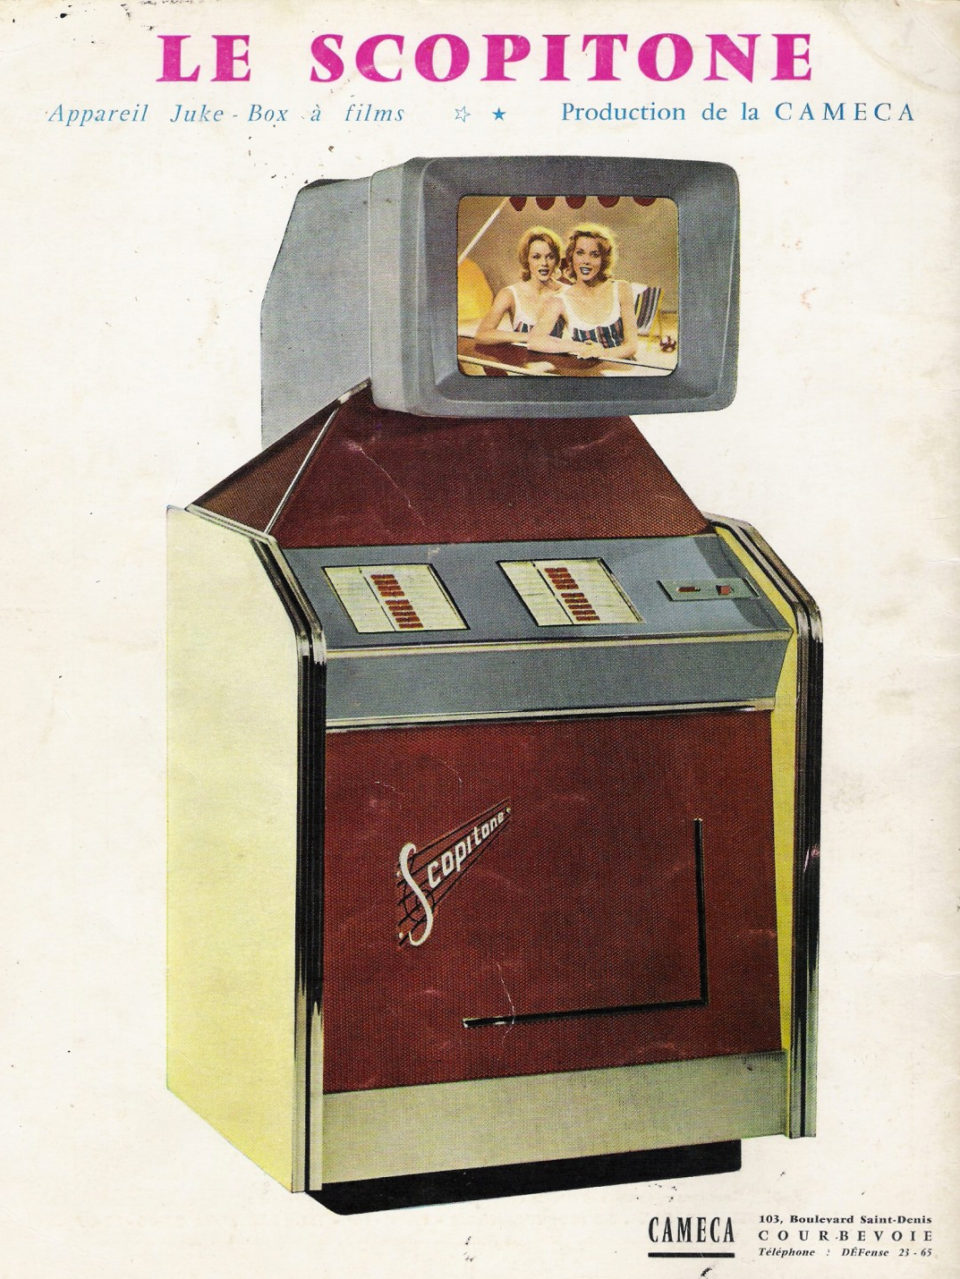 Le Scopitone, a French video jukebox invented in the 1950s